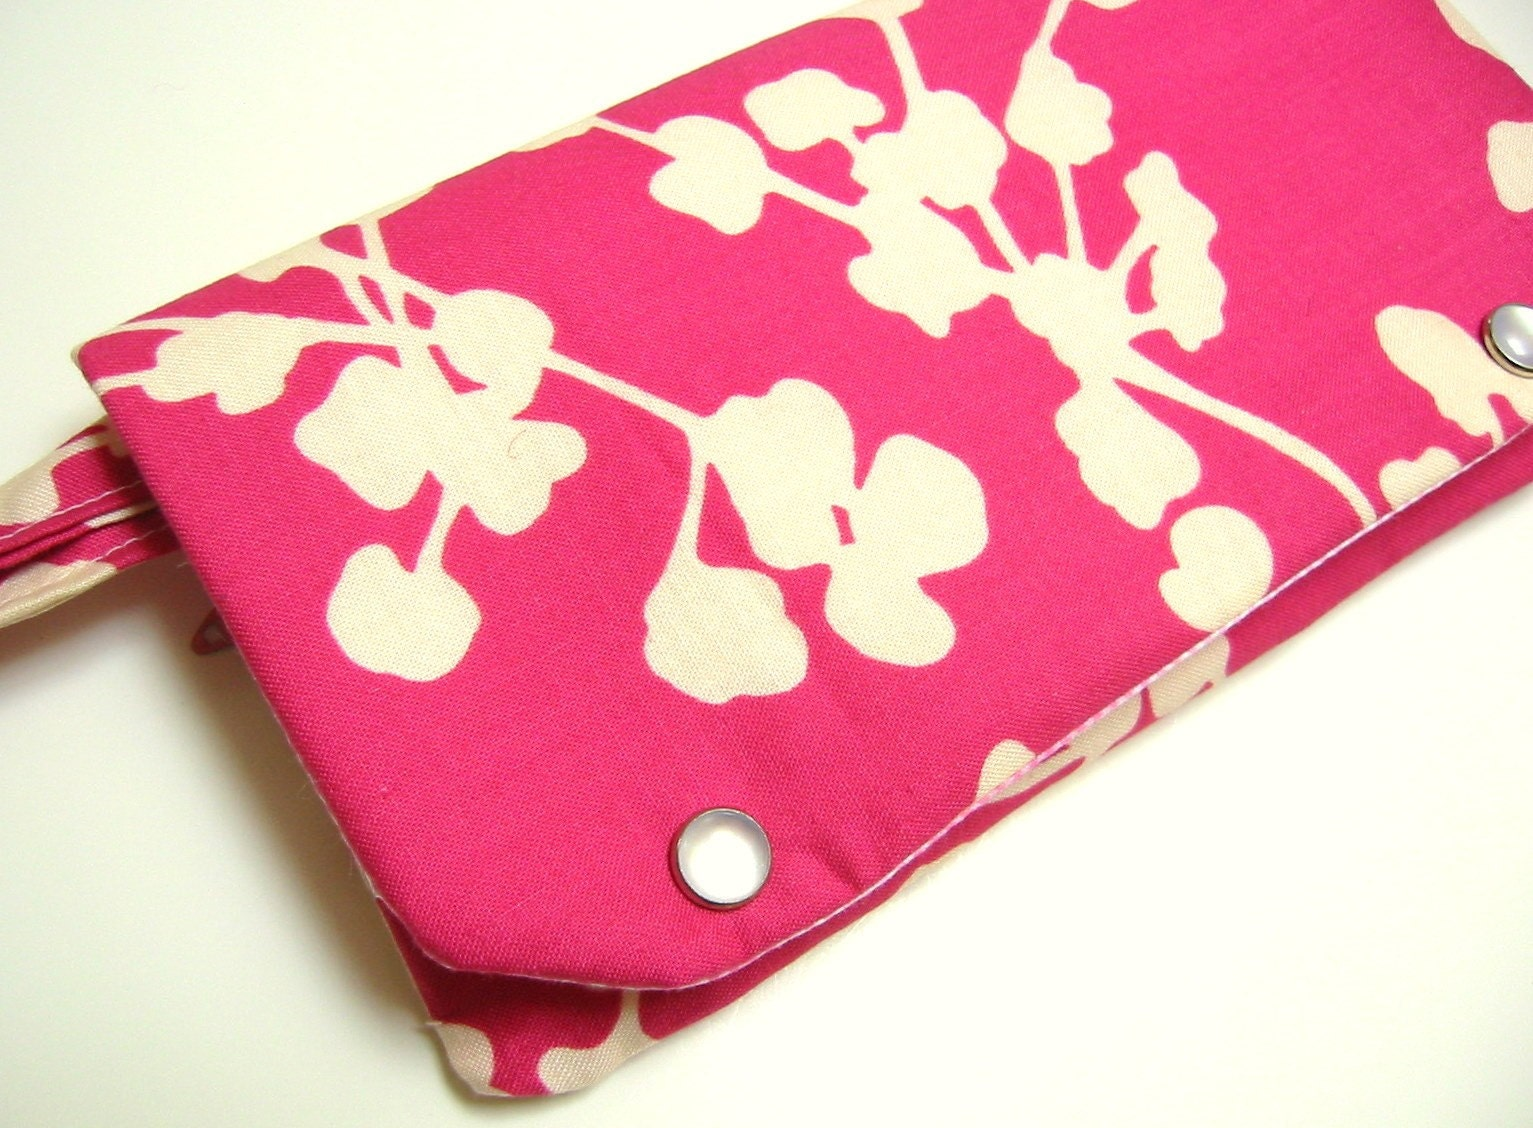 Ivory coriander on fuchsia wristlet wallet : Asian iCandy Store, Unique Asian Arts and Gifts From Independent Artists